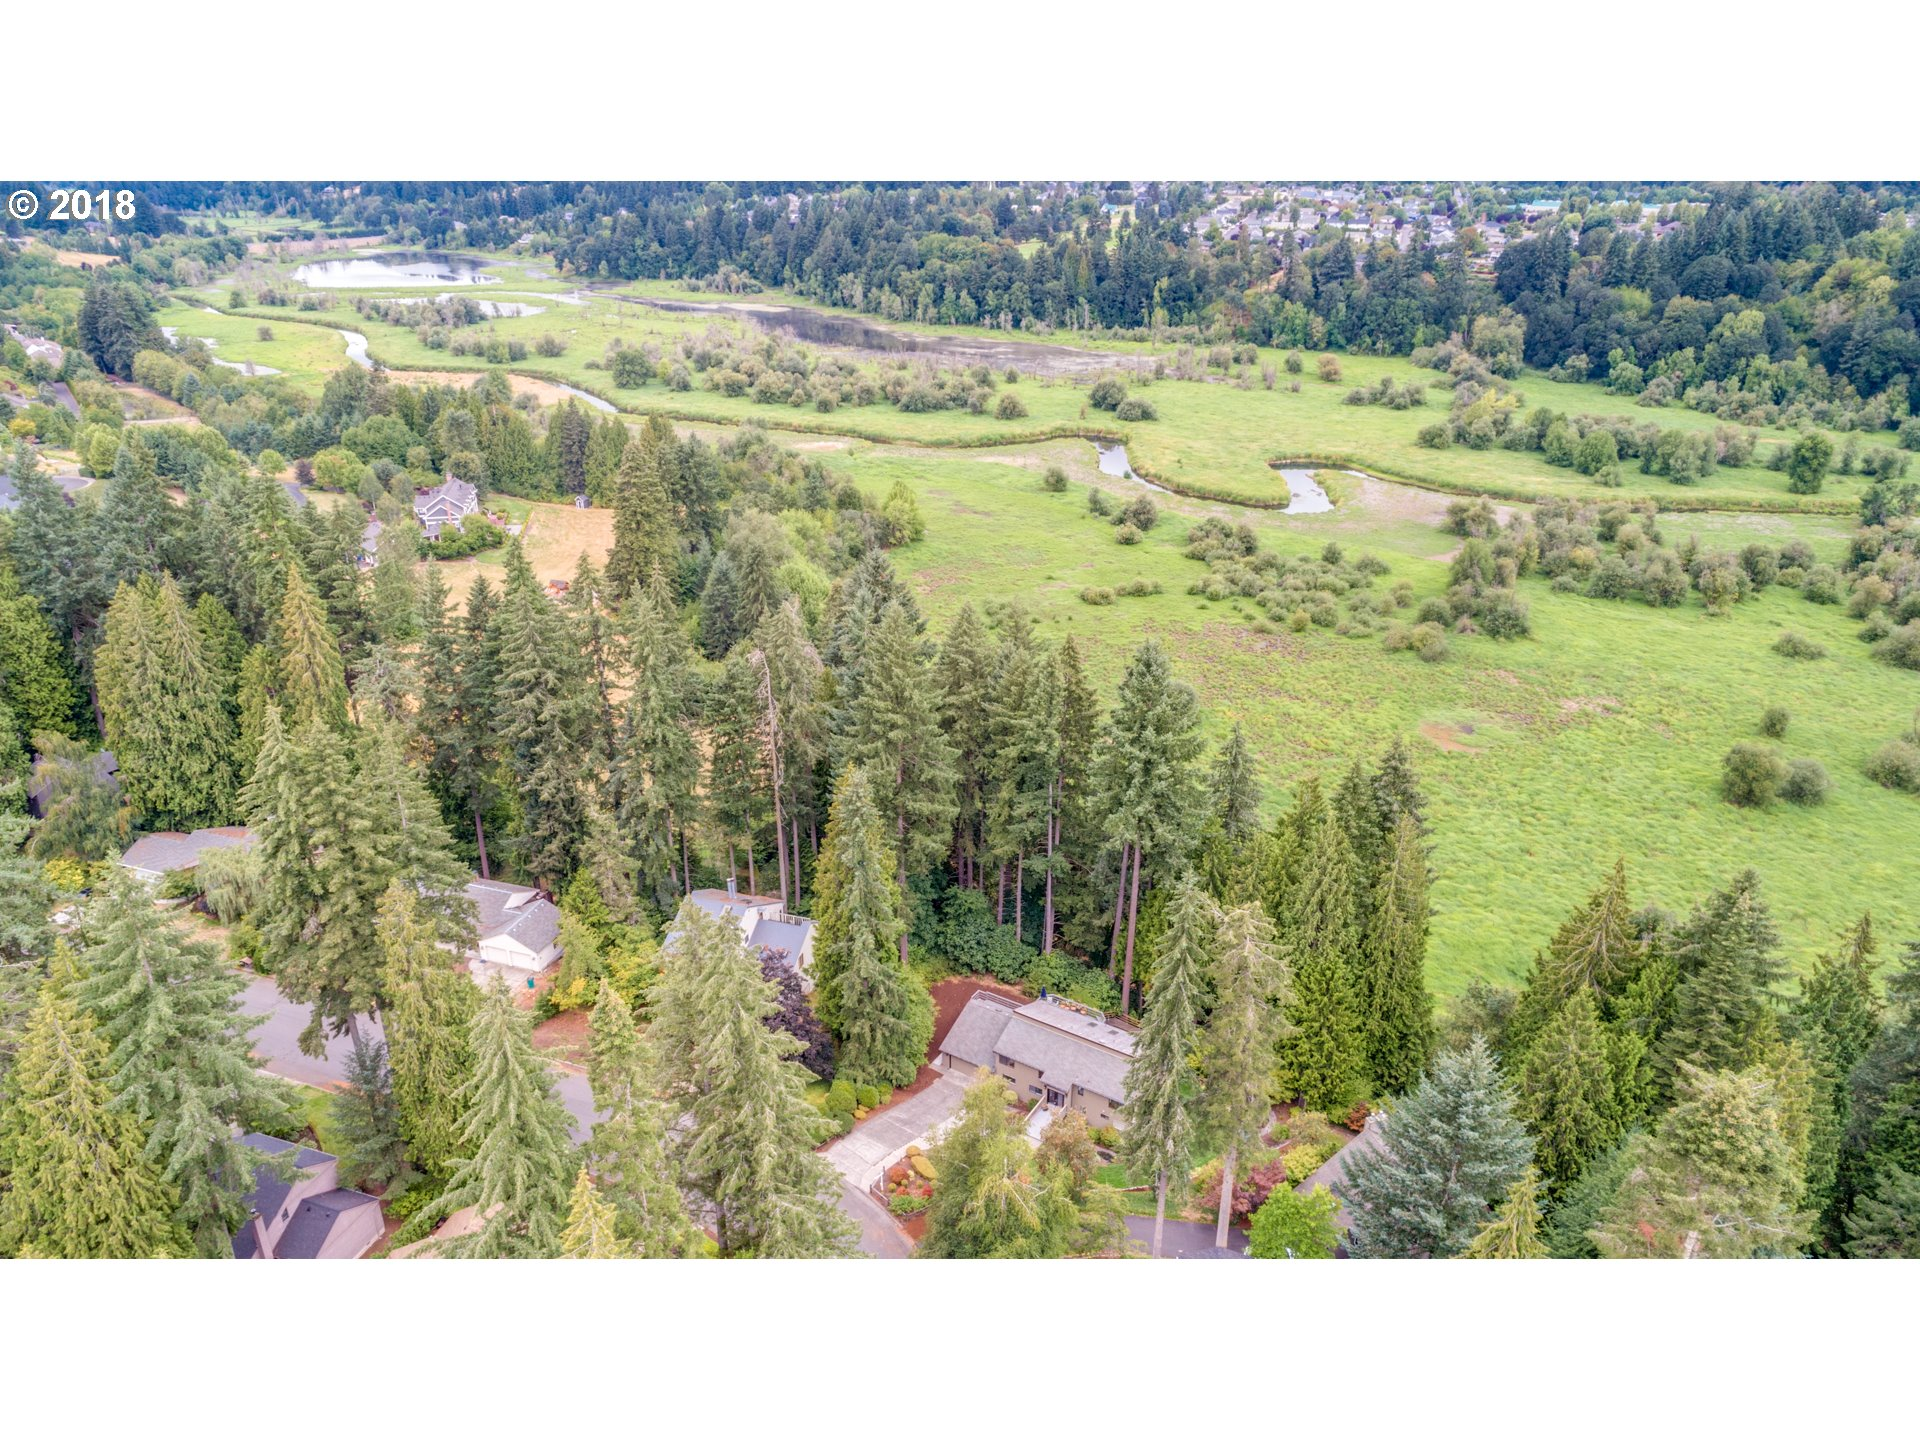 2102 NW 128TH ST Vancouver, WA 98685 - MLS #: 18686037